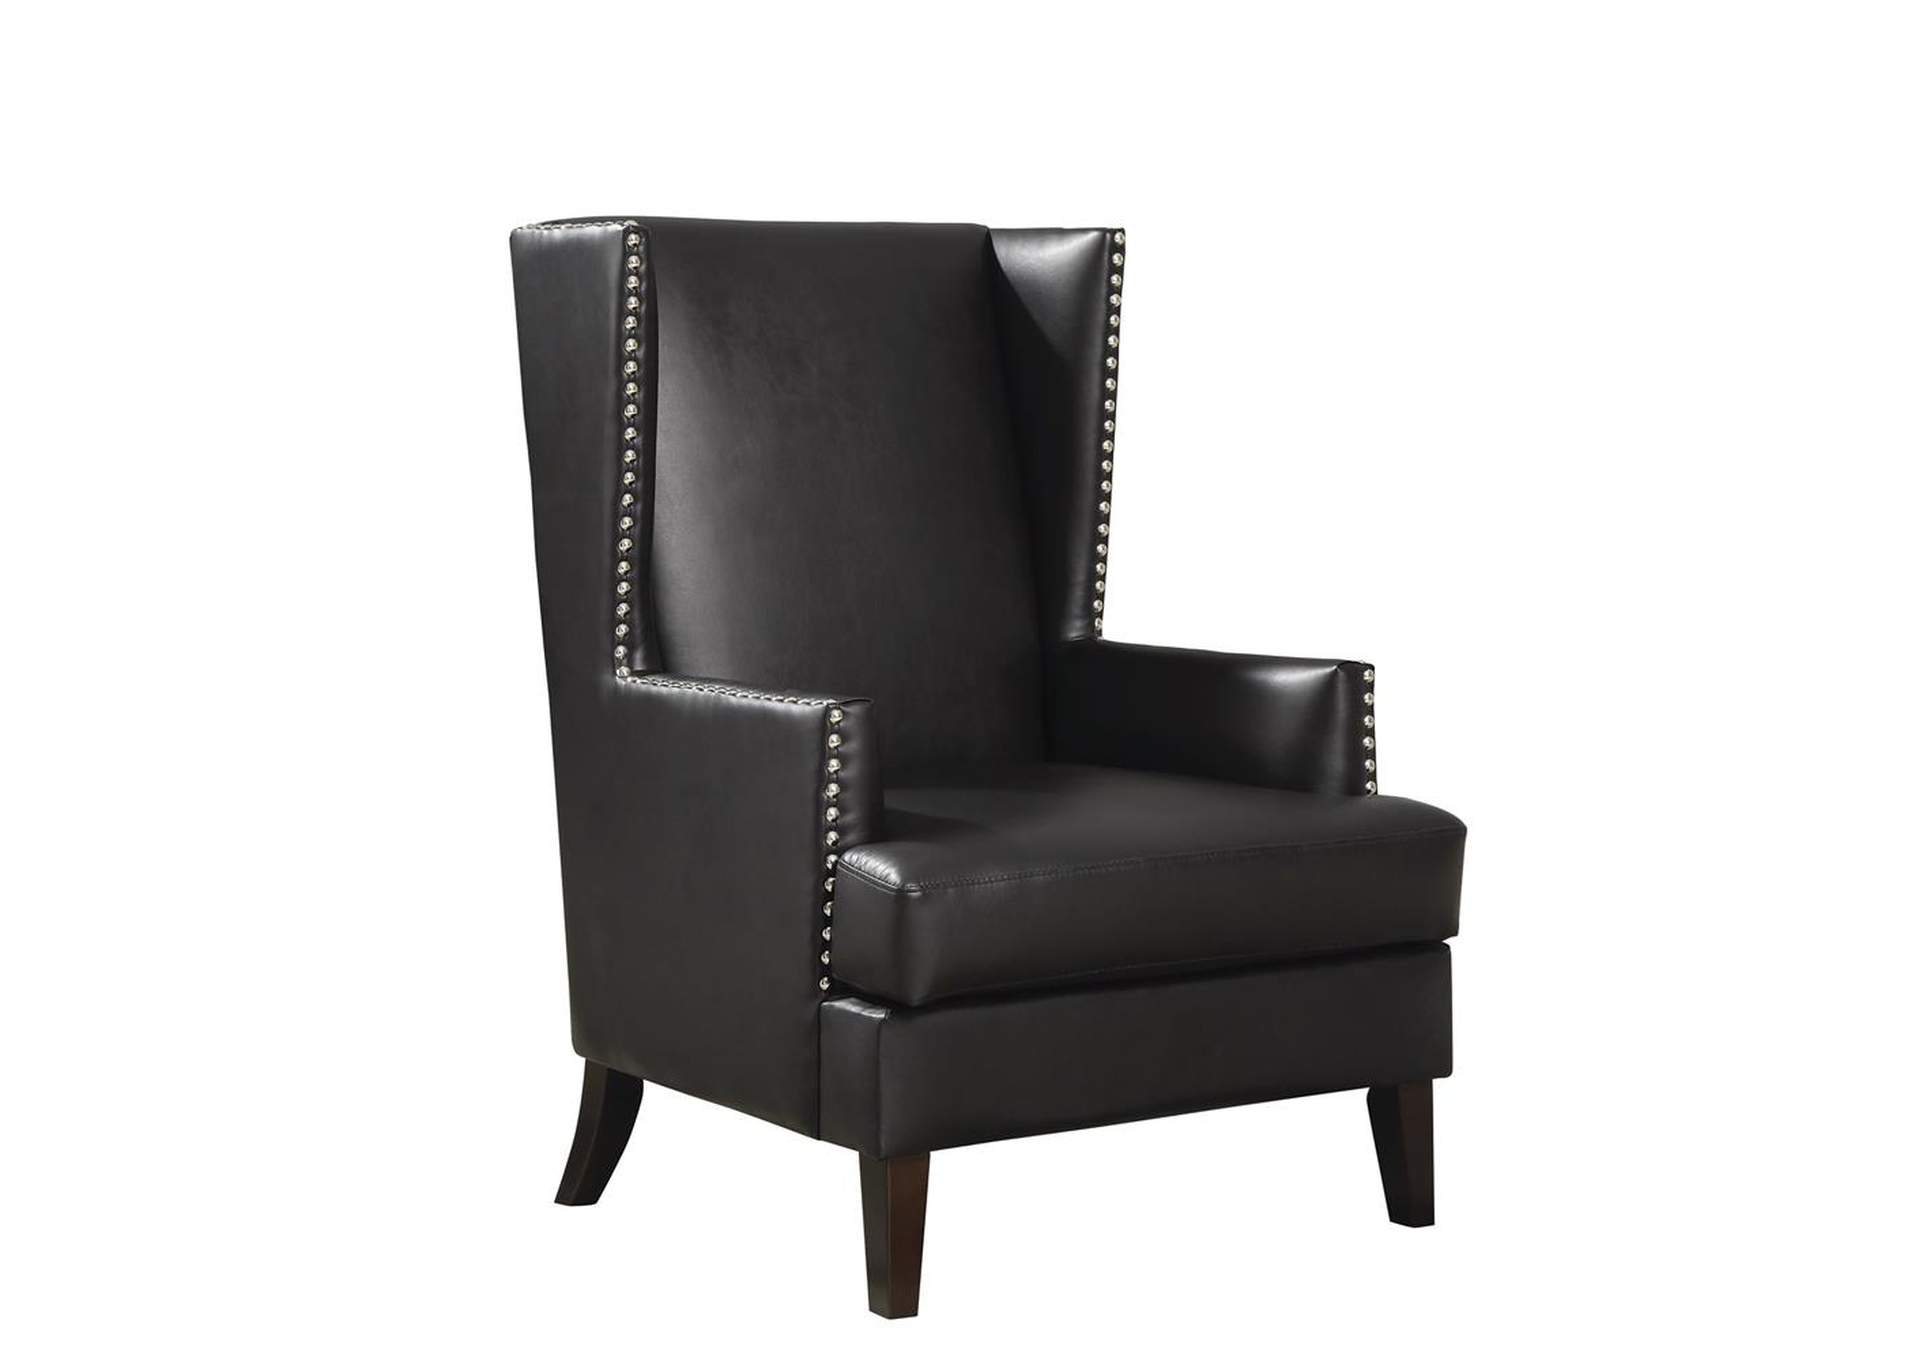 Black Accent Chair,Coaster Furniture